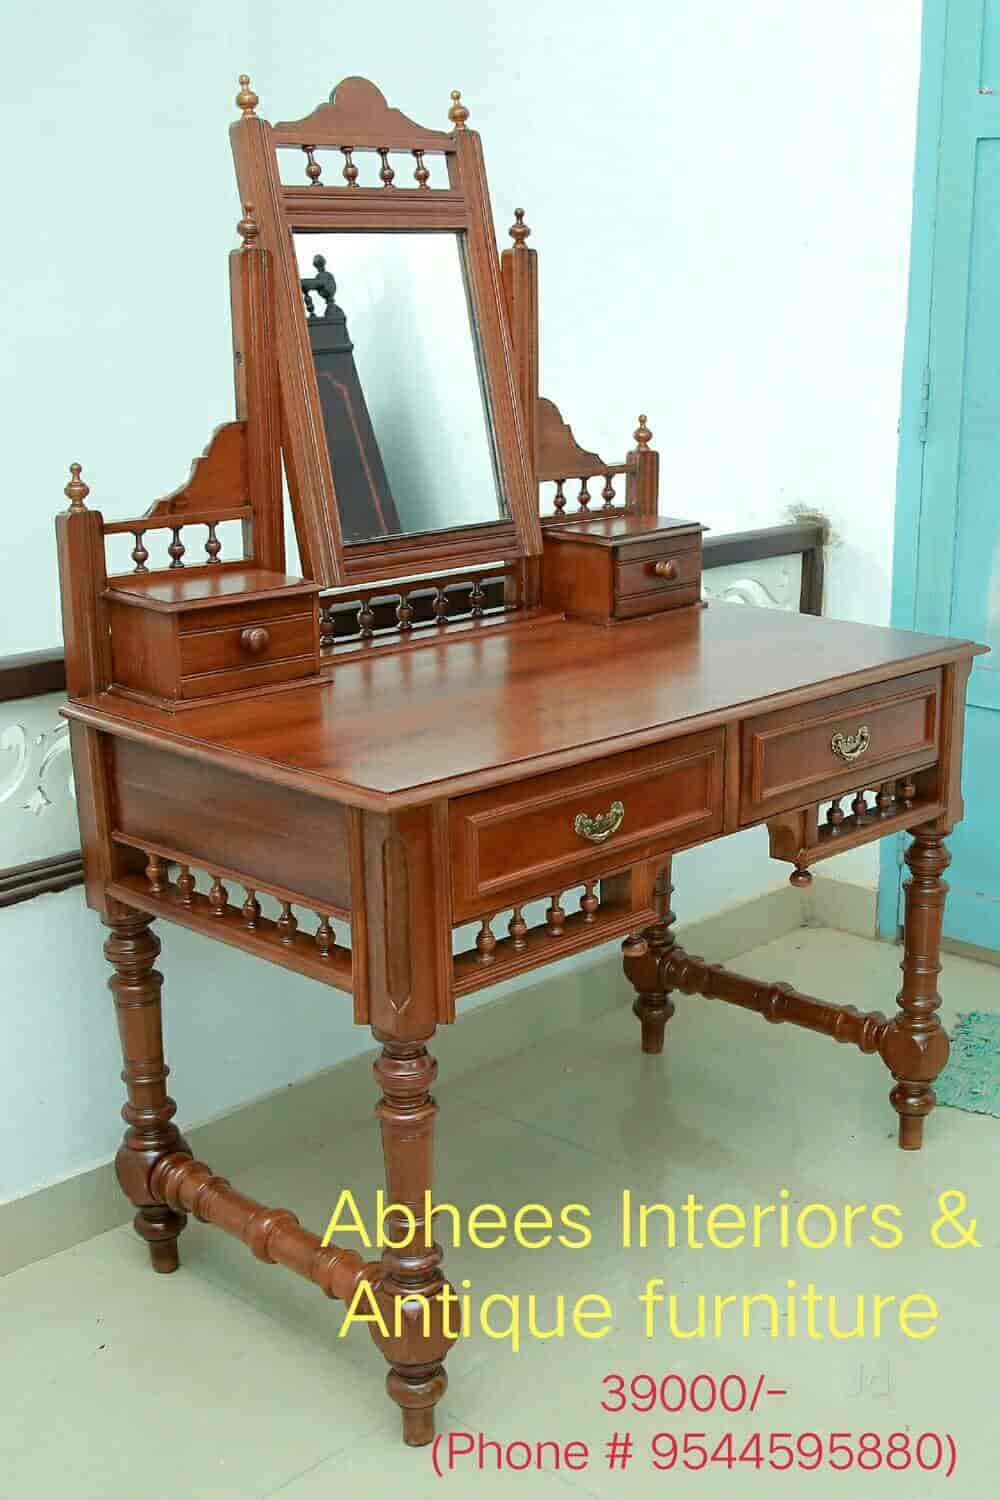 Abhees Interiors And Antique Furniture, Pooppathy - Interior